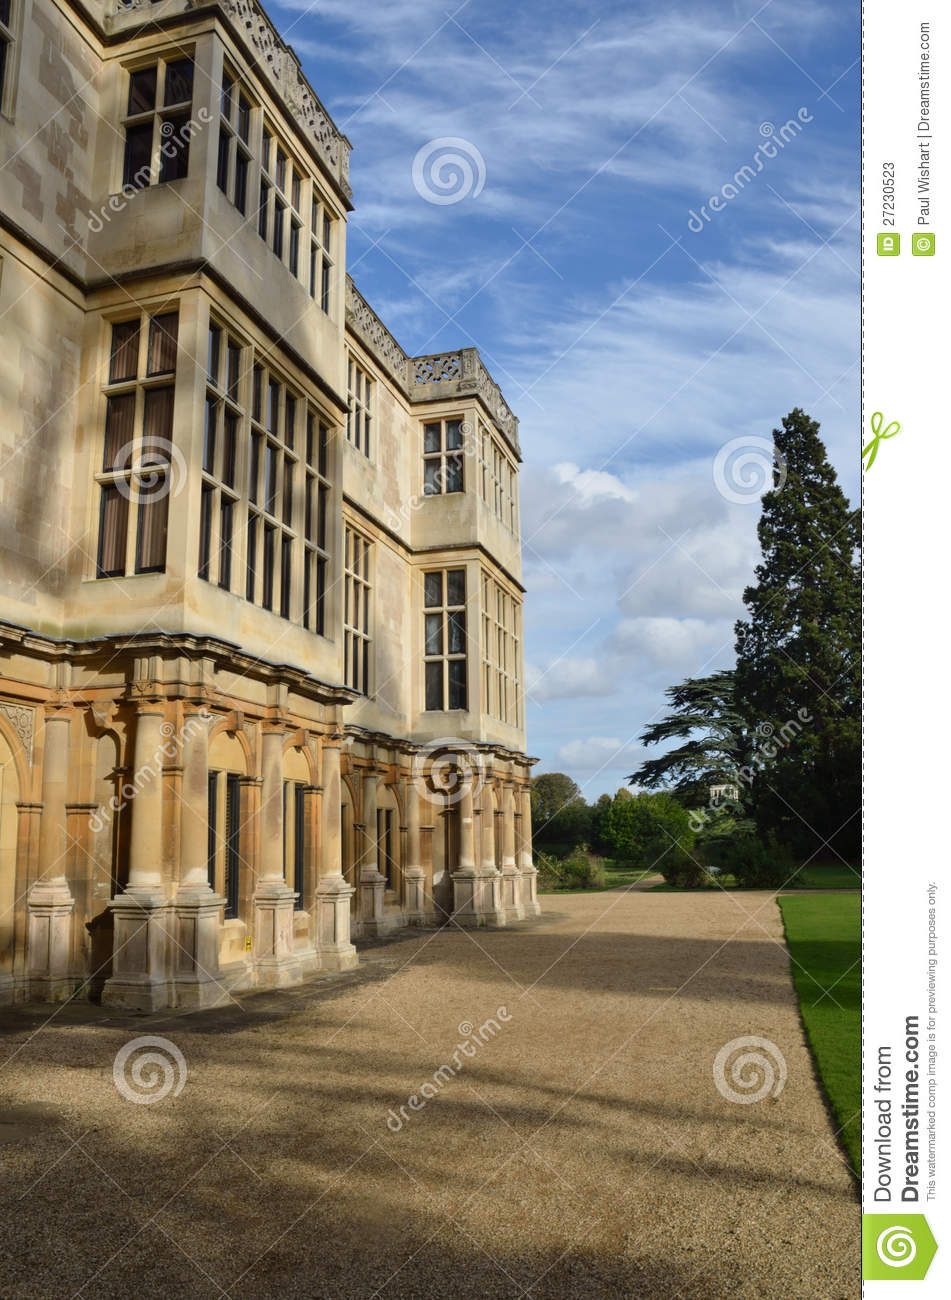 Stately home front